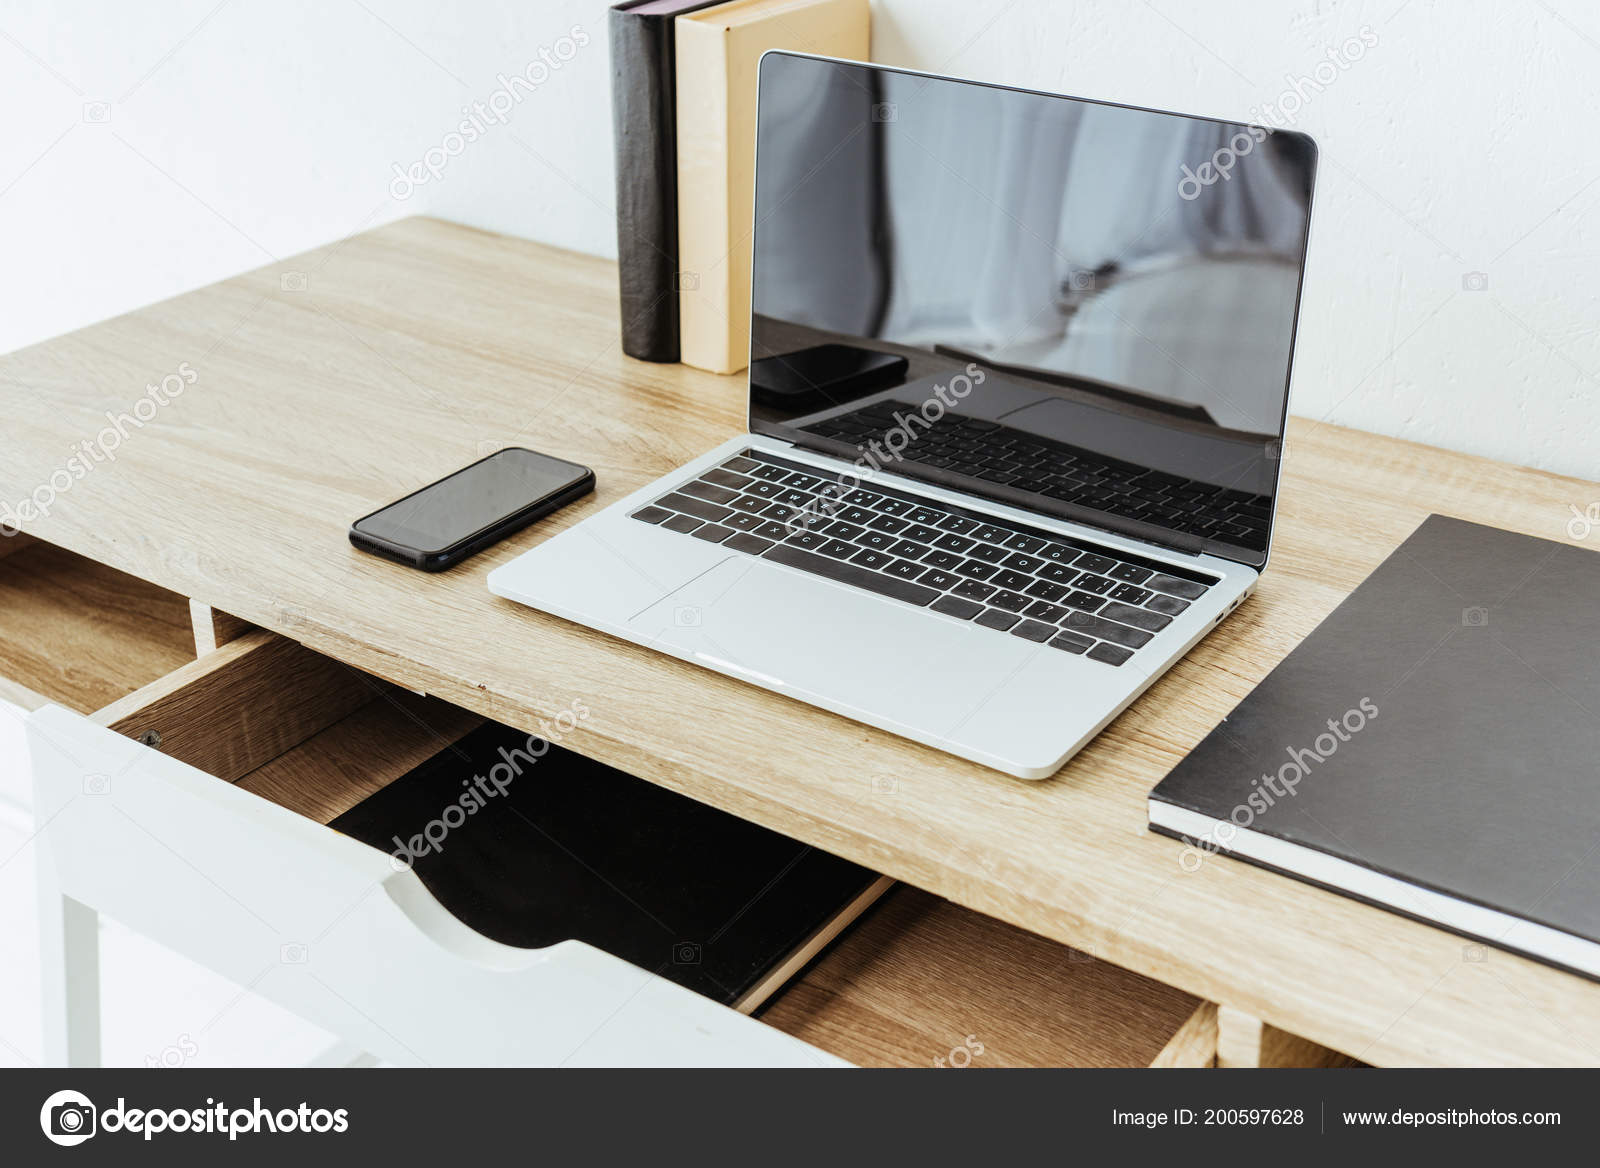 Terrific Laptop Smartphone Books Work Desk Office Stock Photo C Y Interior Design Ideas Clesiryabchikinfo